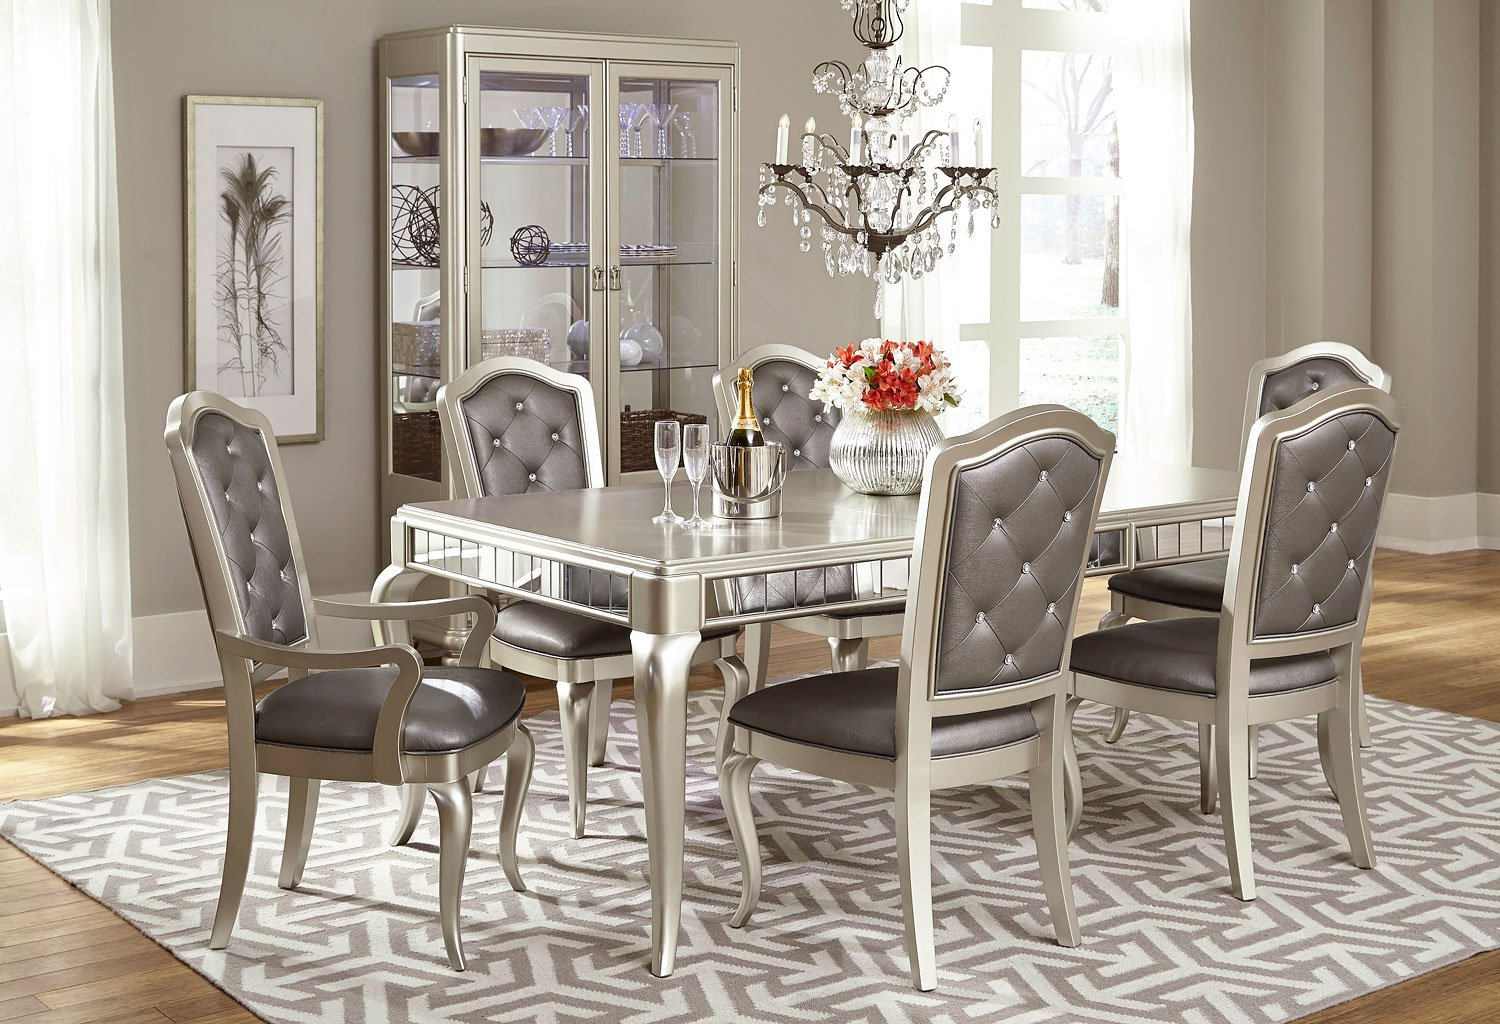 Diva Dining Room Set Samuel Lawrence Furniture 1 Reviews inside 15 Clever Ways How to Make Dining And Living Room Sets